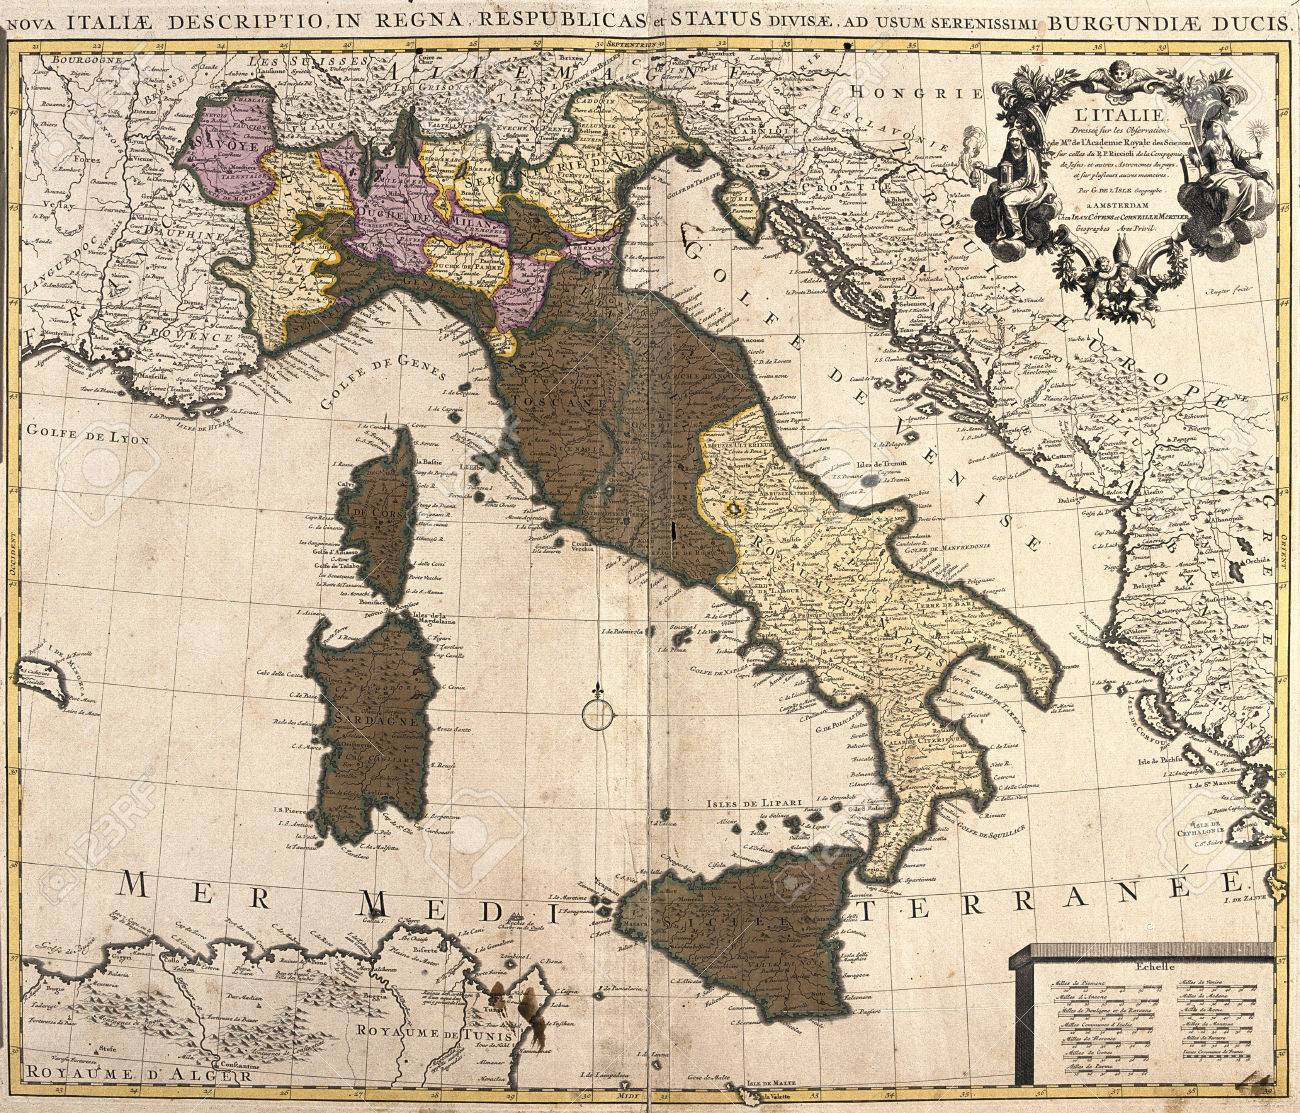 Old map of italy with corsica and sardinia stock photo picture and old map of italy with corsica and sardinia stock photo 42101437 gumiabroncs Choice Image